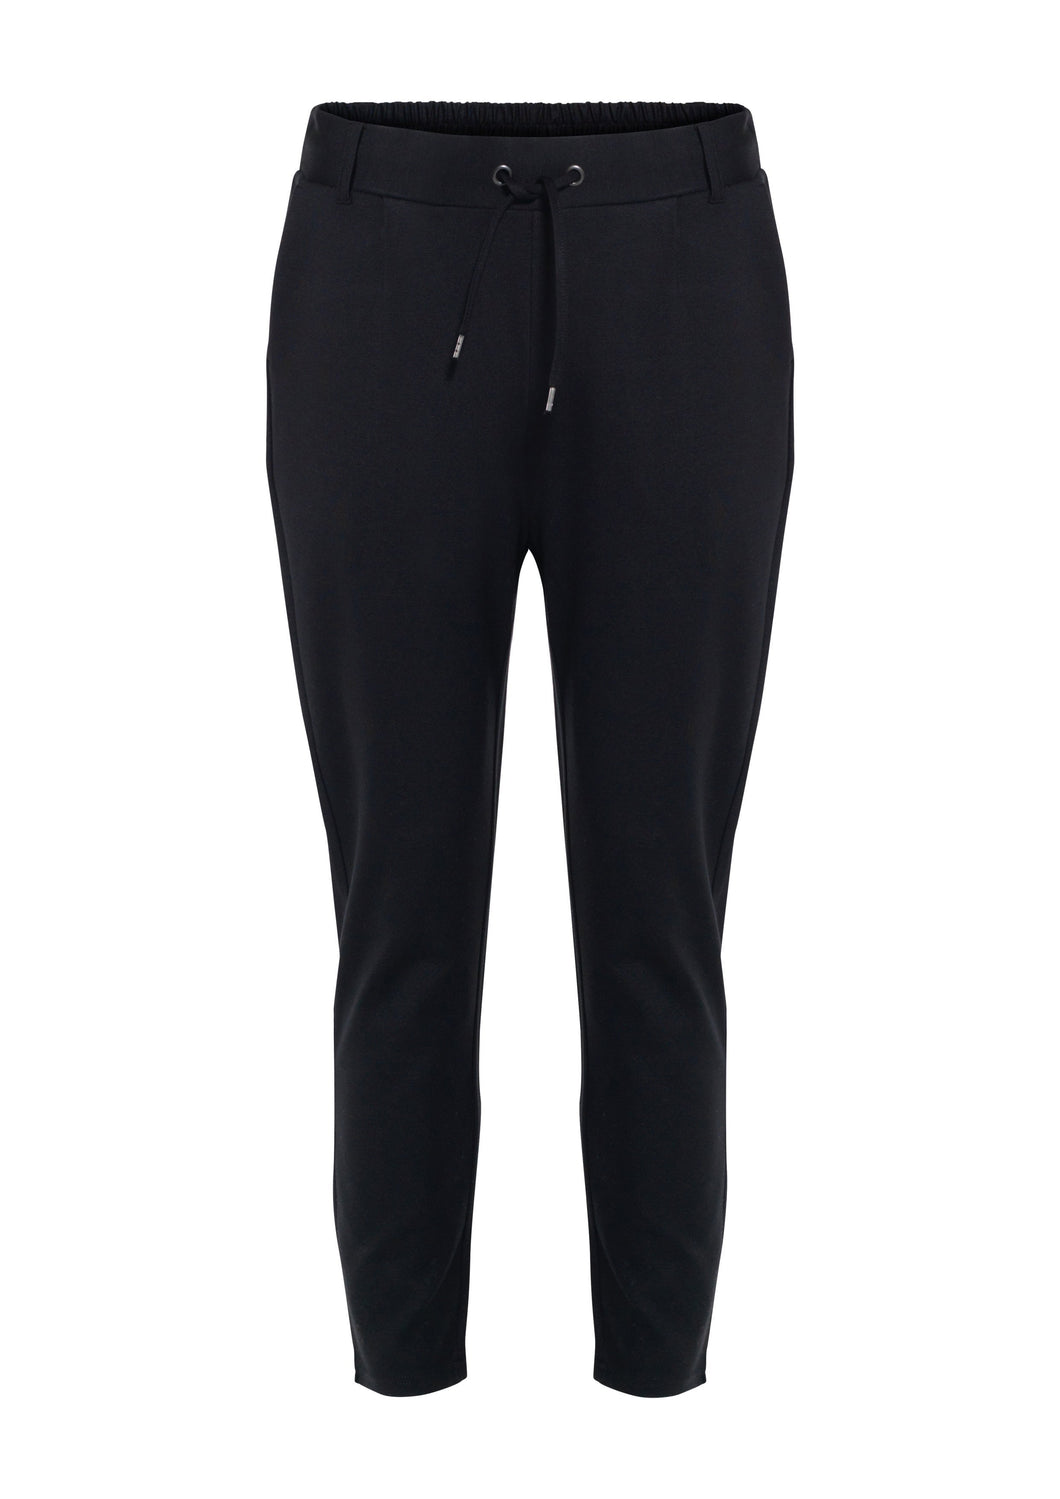 Asali Stretch Trousers Black - Renaissance Boutiques Ireland